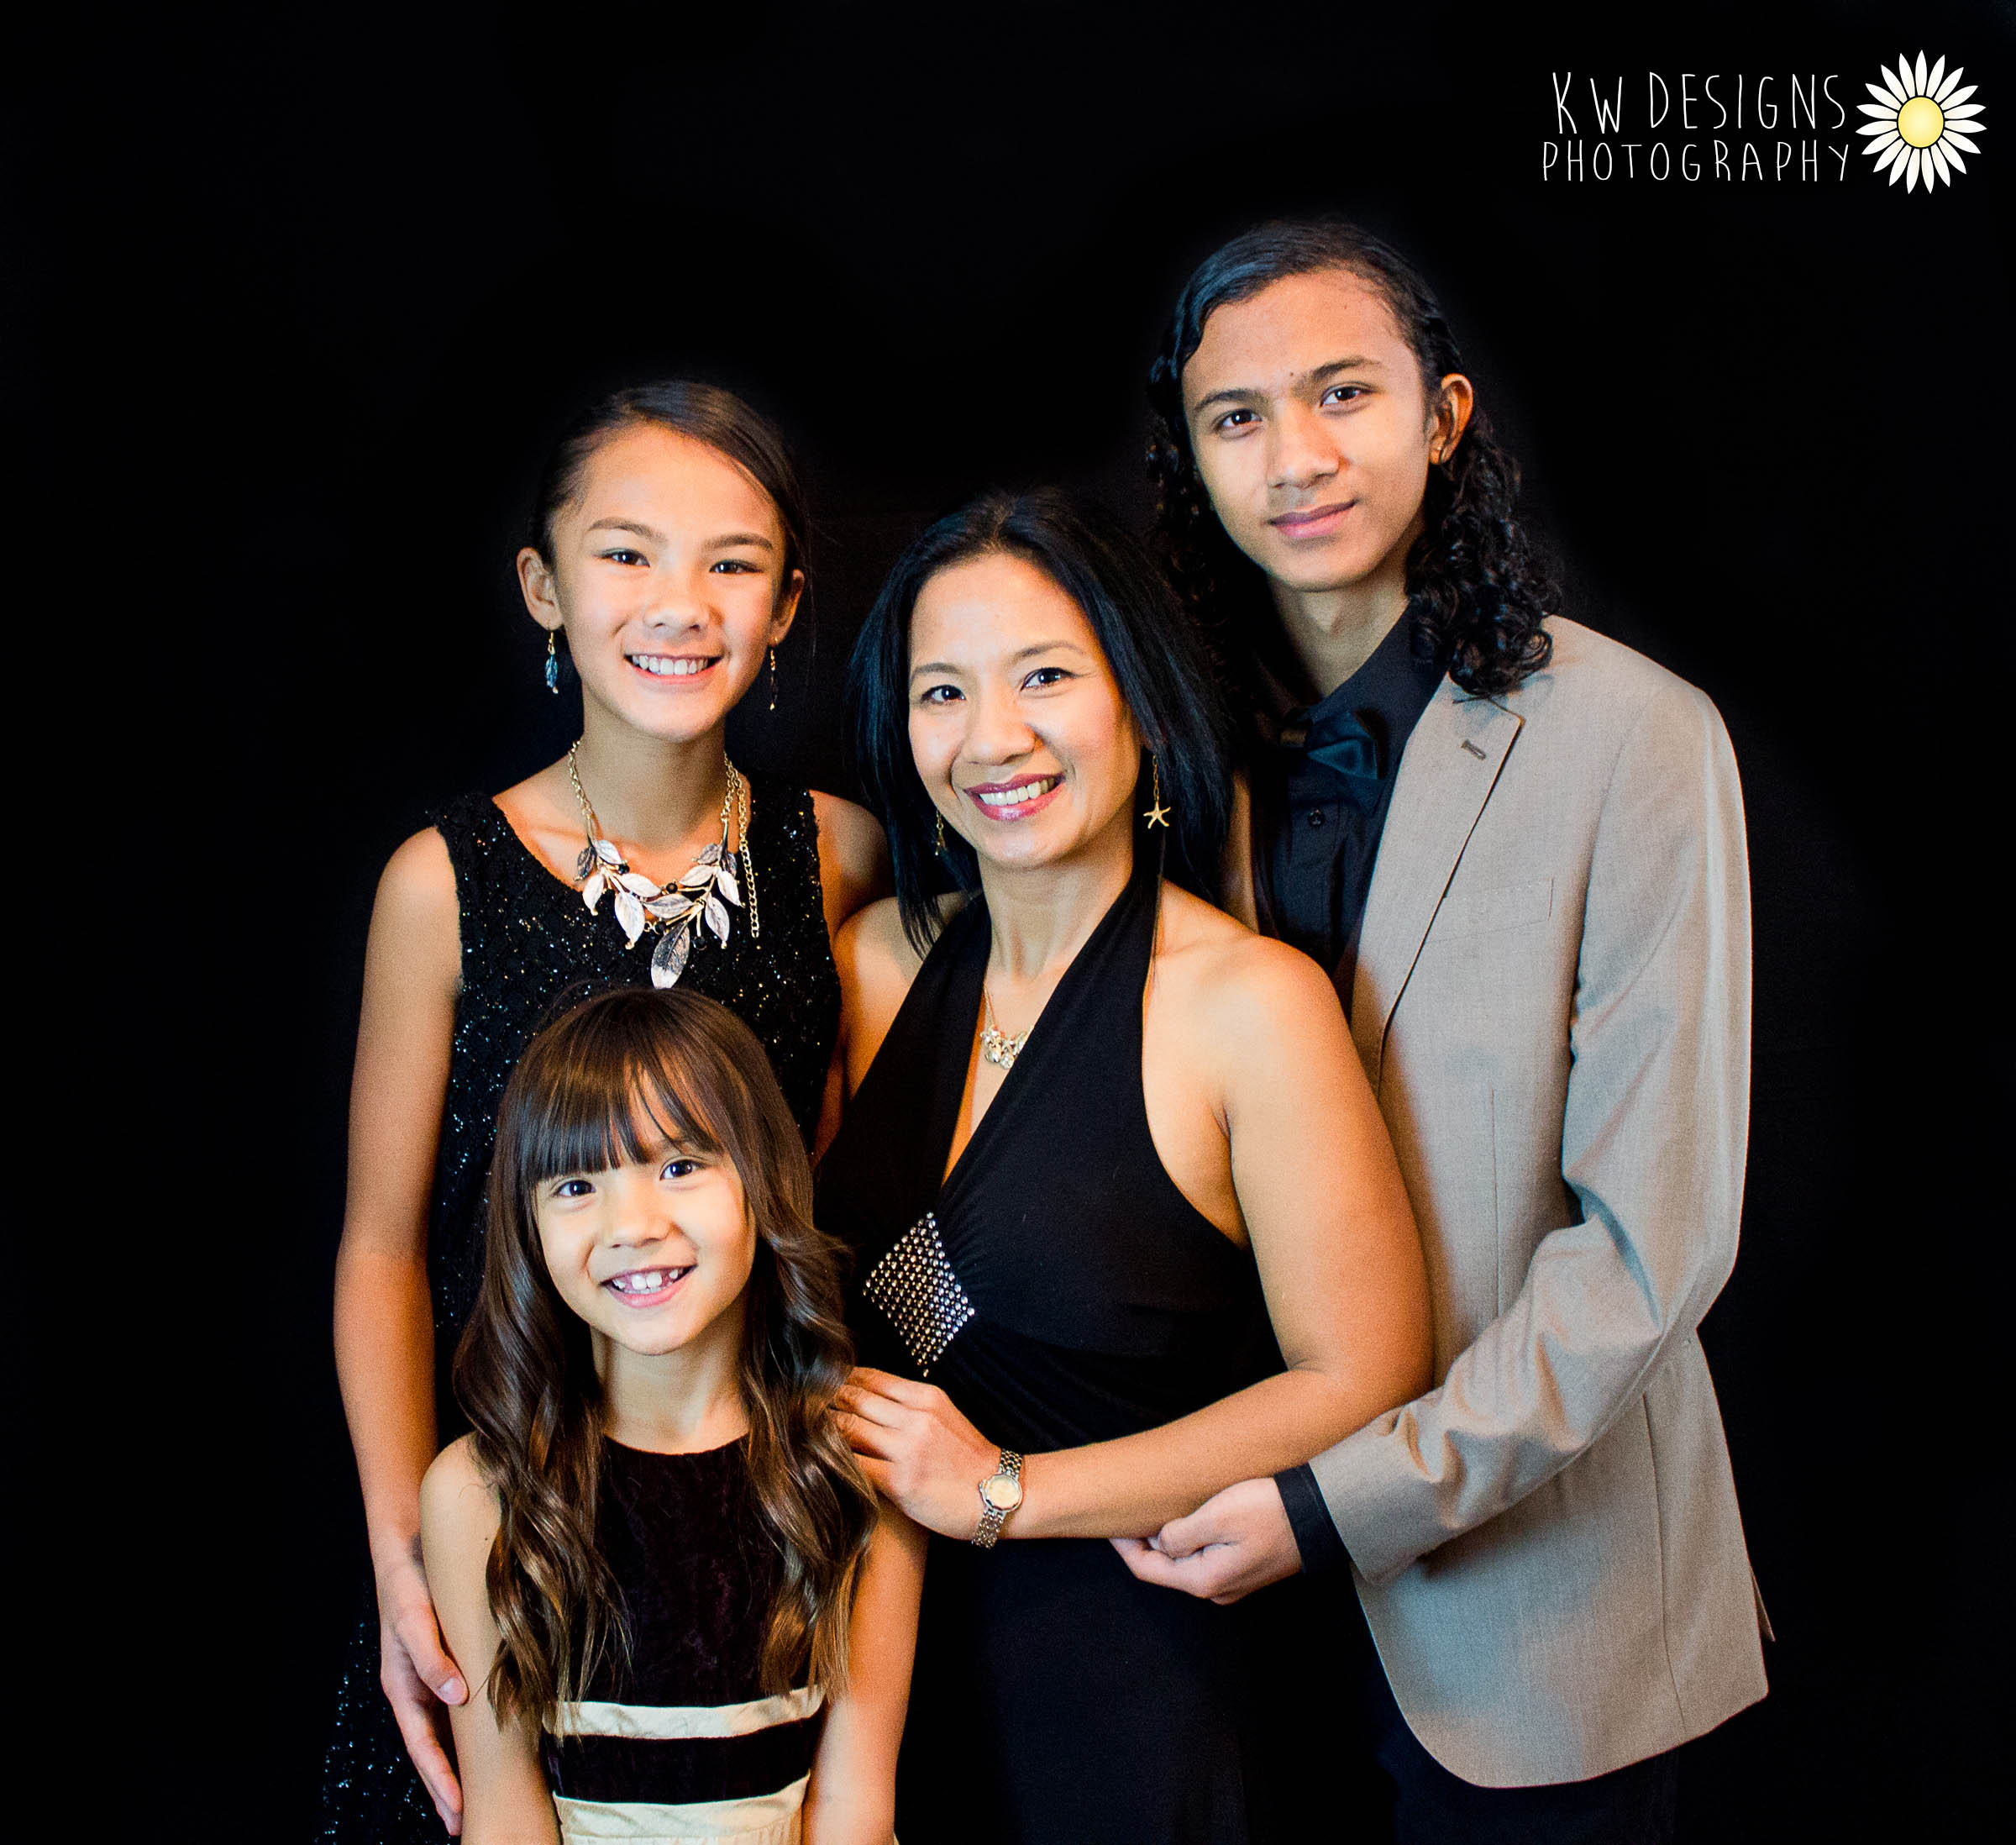 Denver Family Photographer; Lakewood, CO Family Photographer